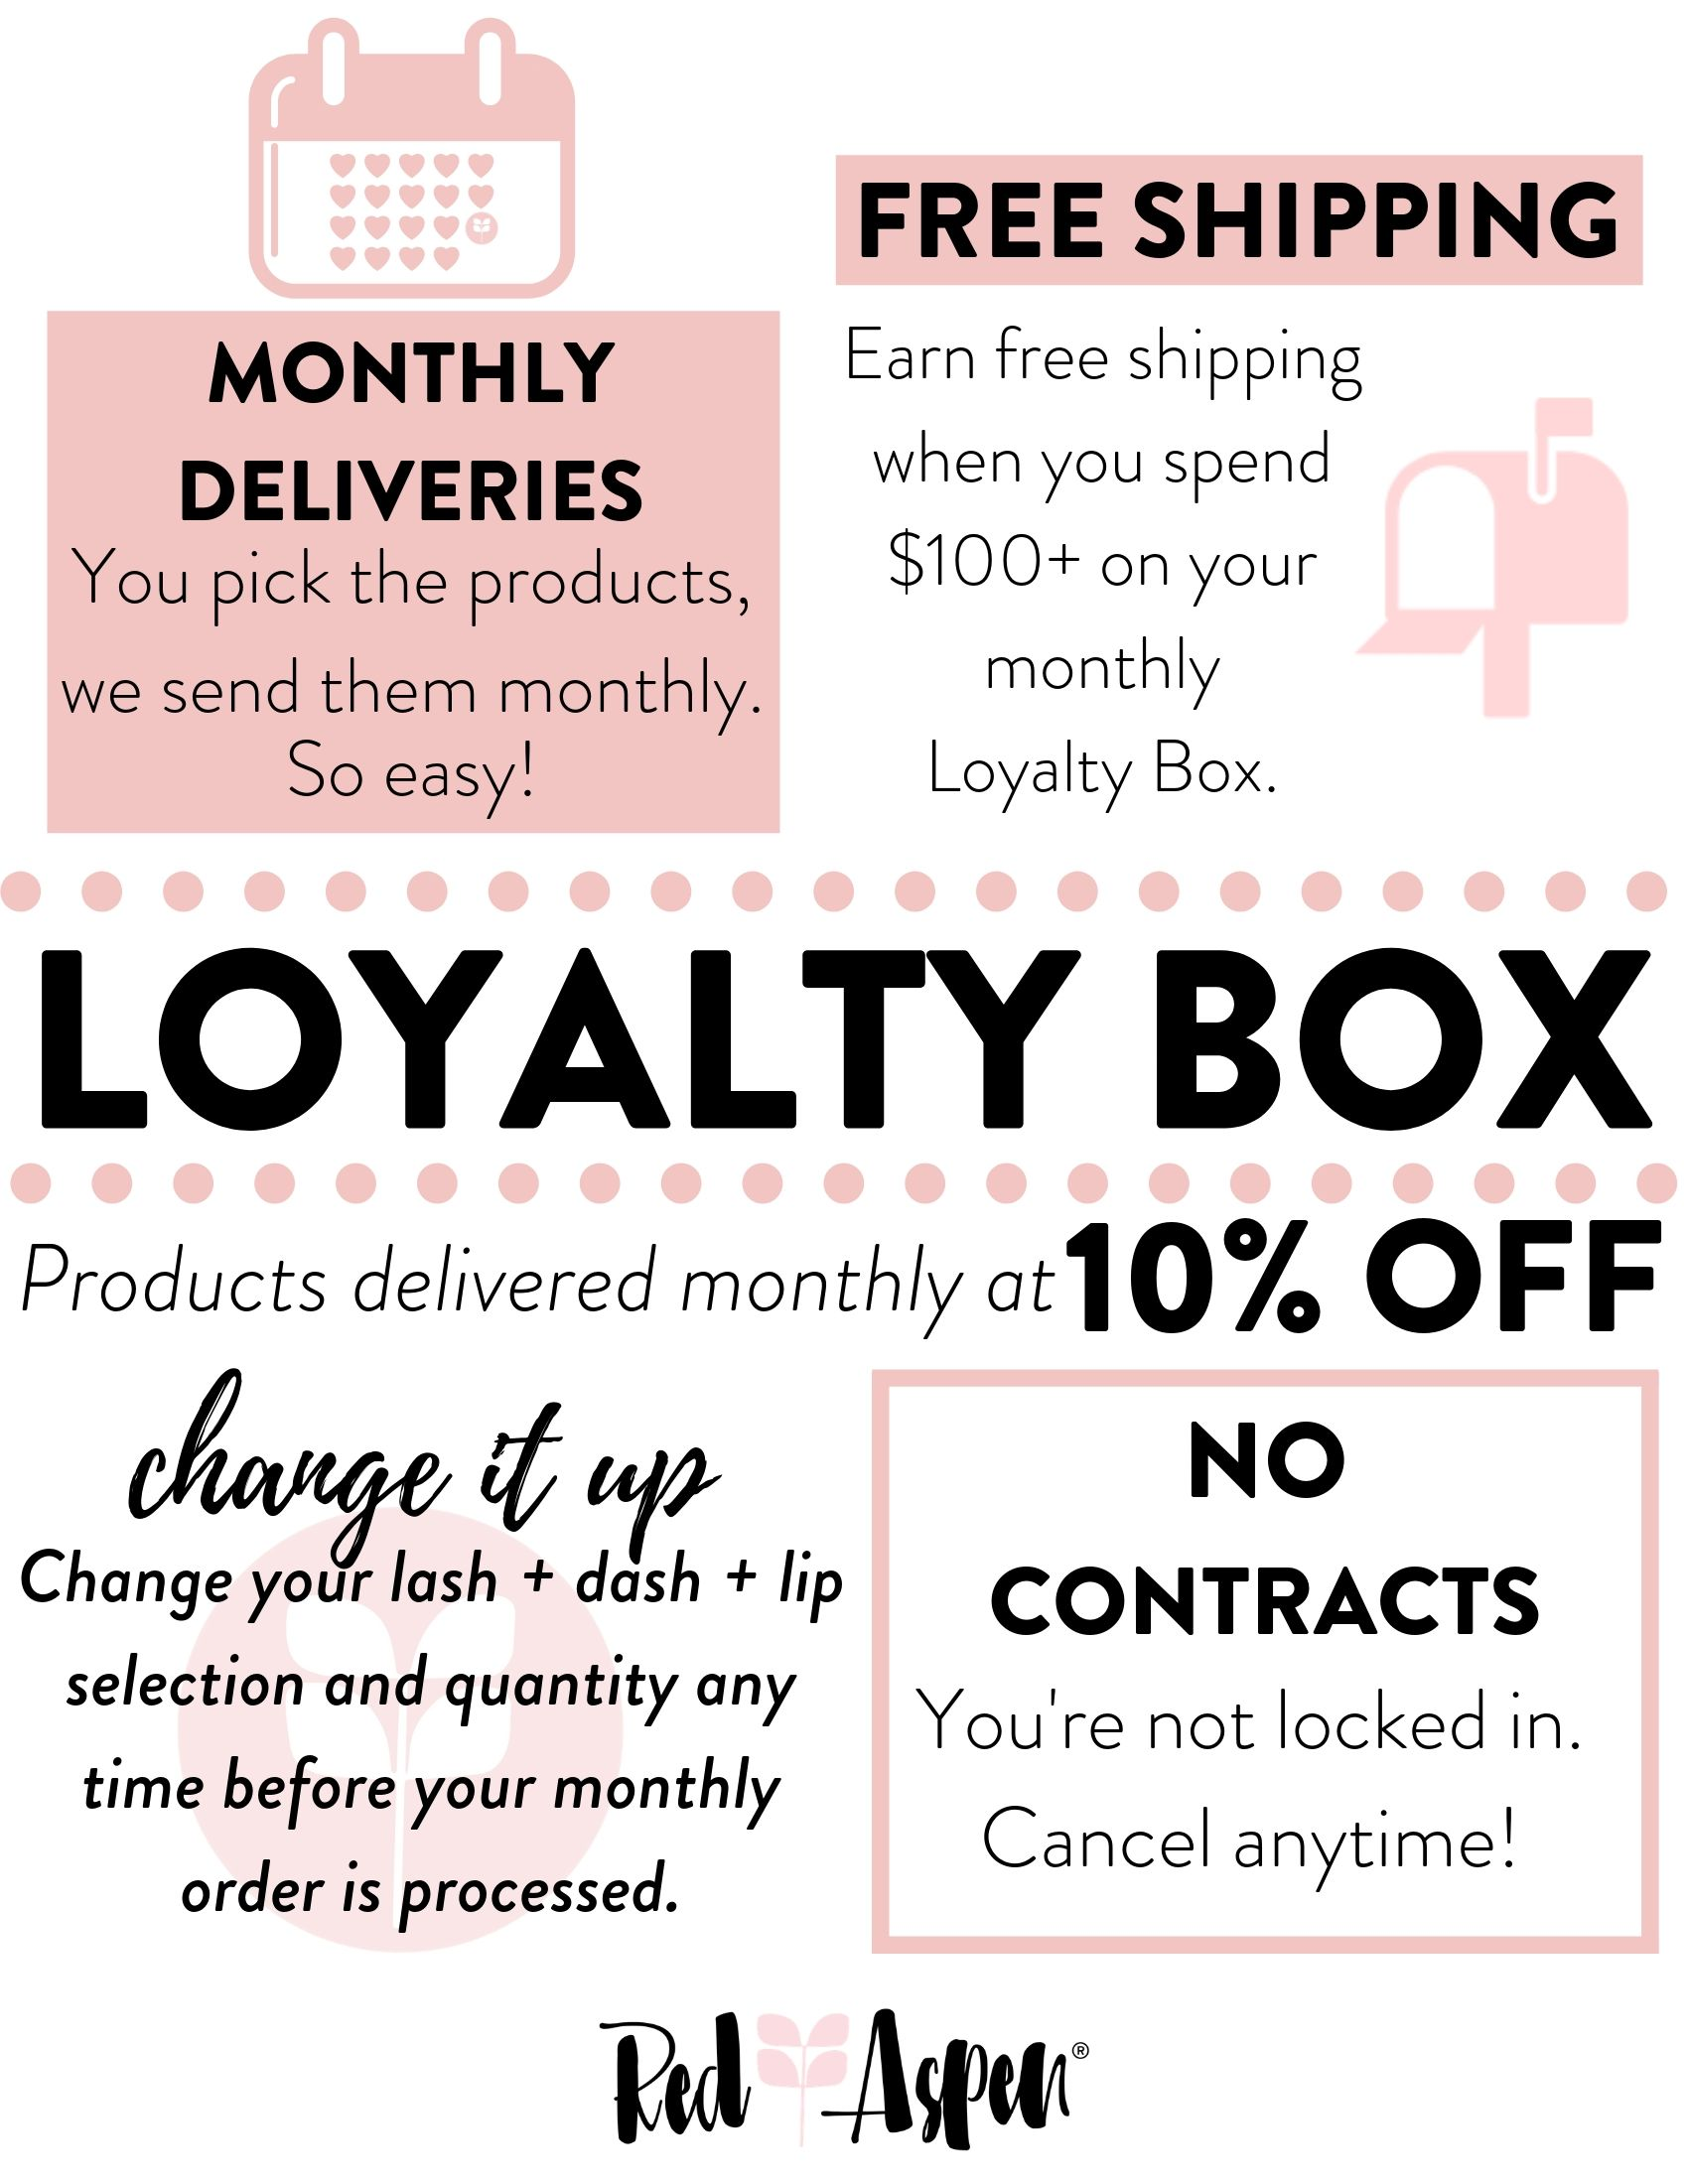 Loyalty Box Graphic.jpg